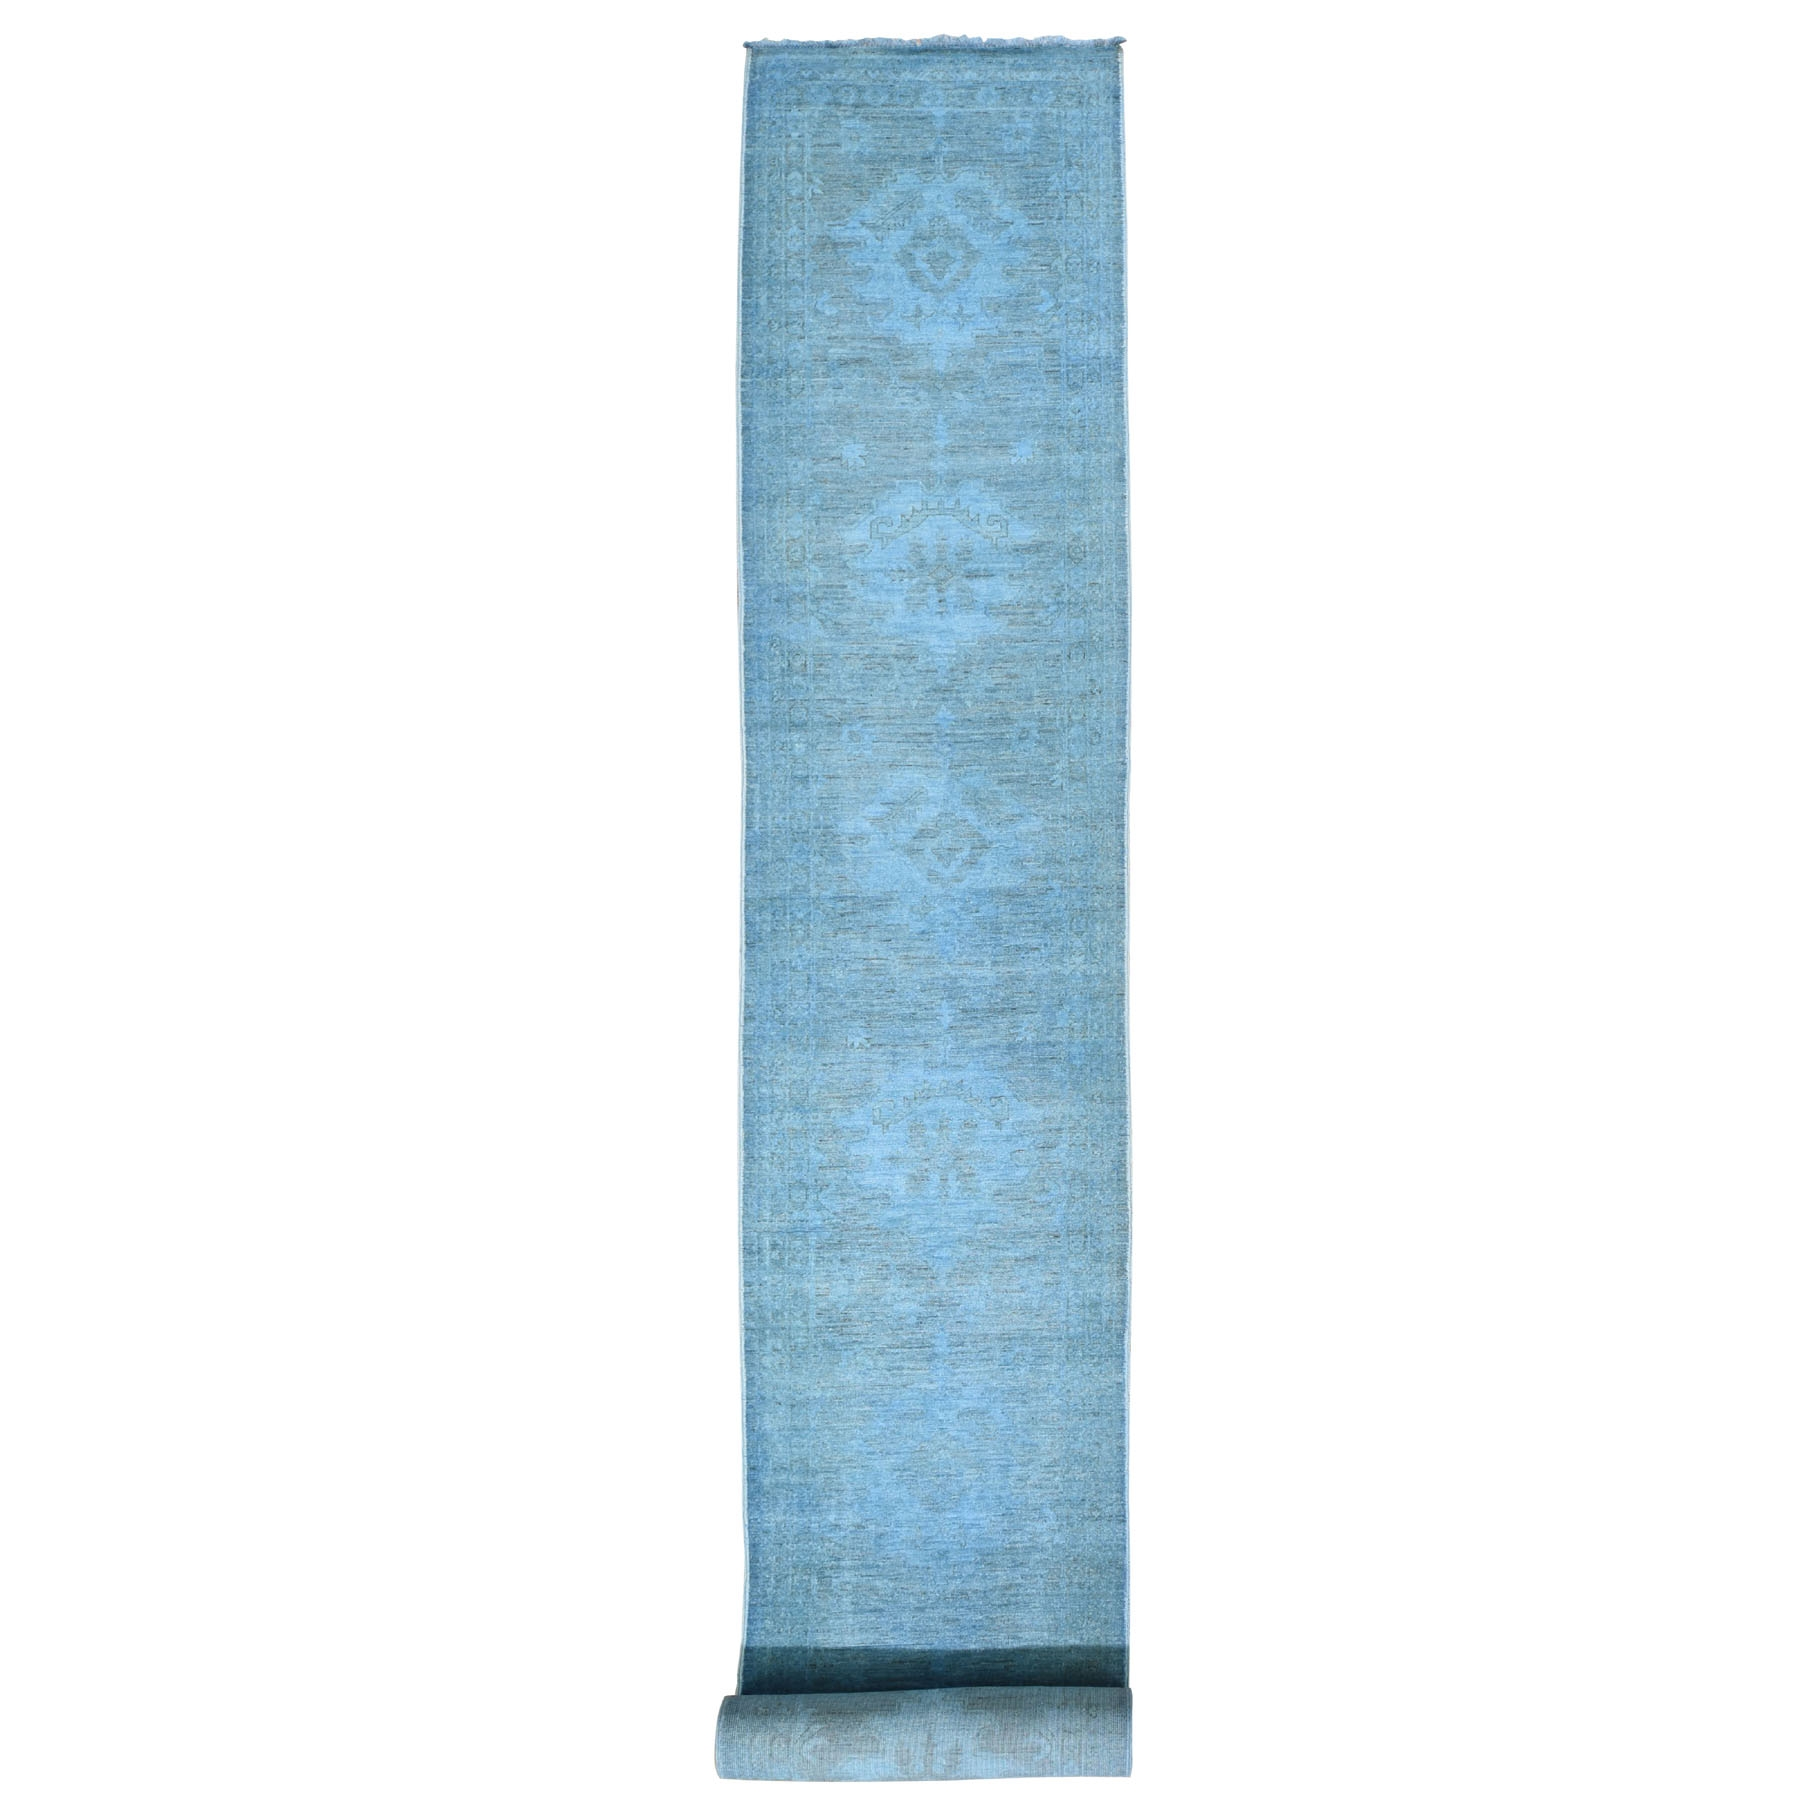 Fetneh Collection And Vintage Overdyed Collection Hand Knotted Blue Rug No: 196074